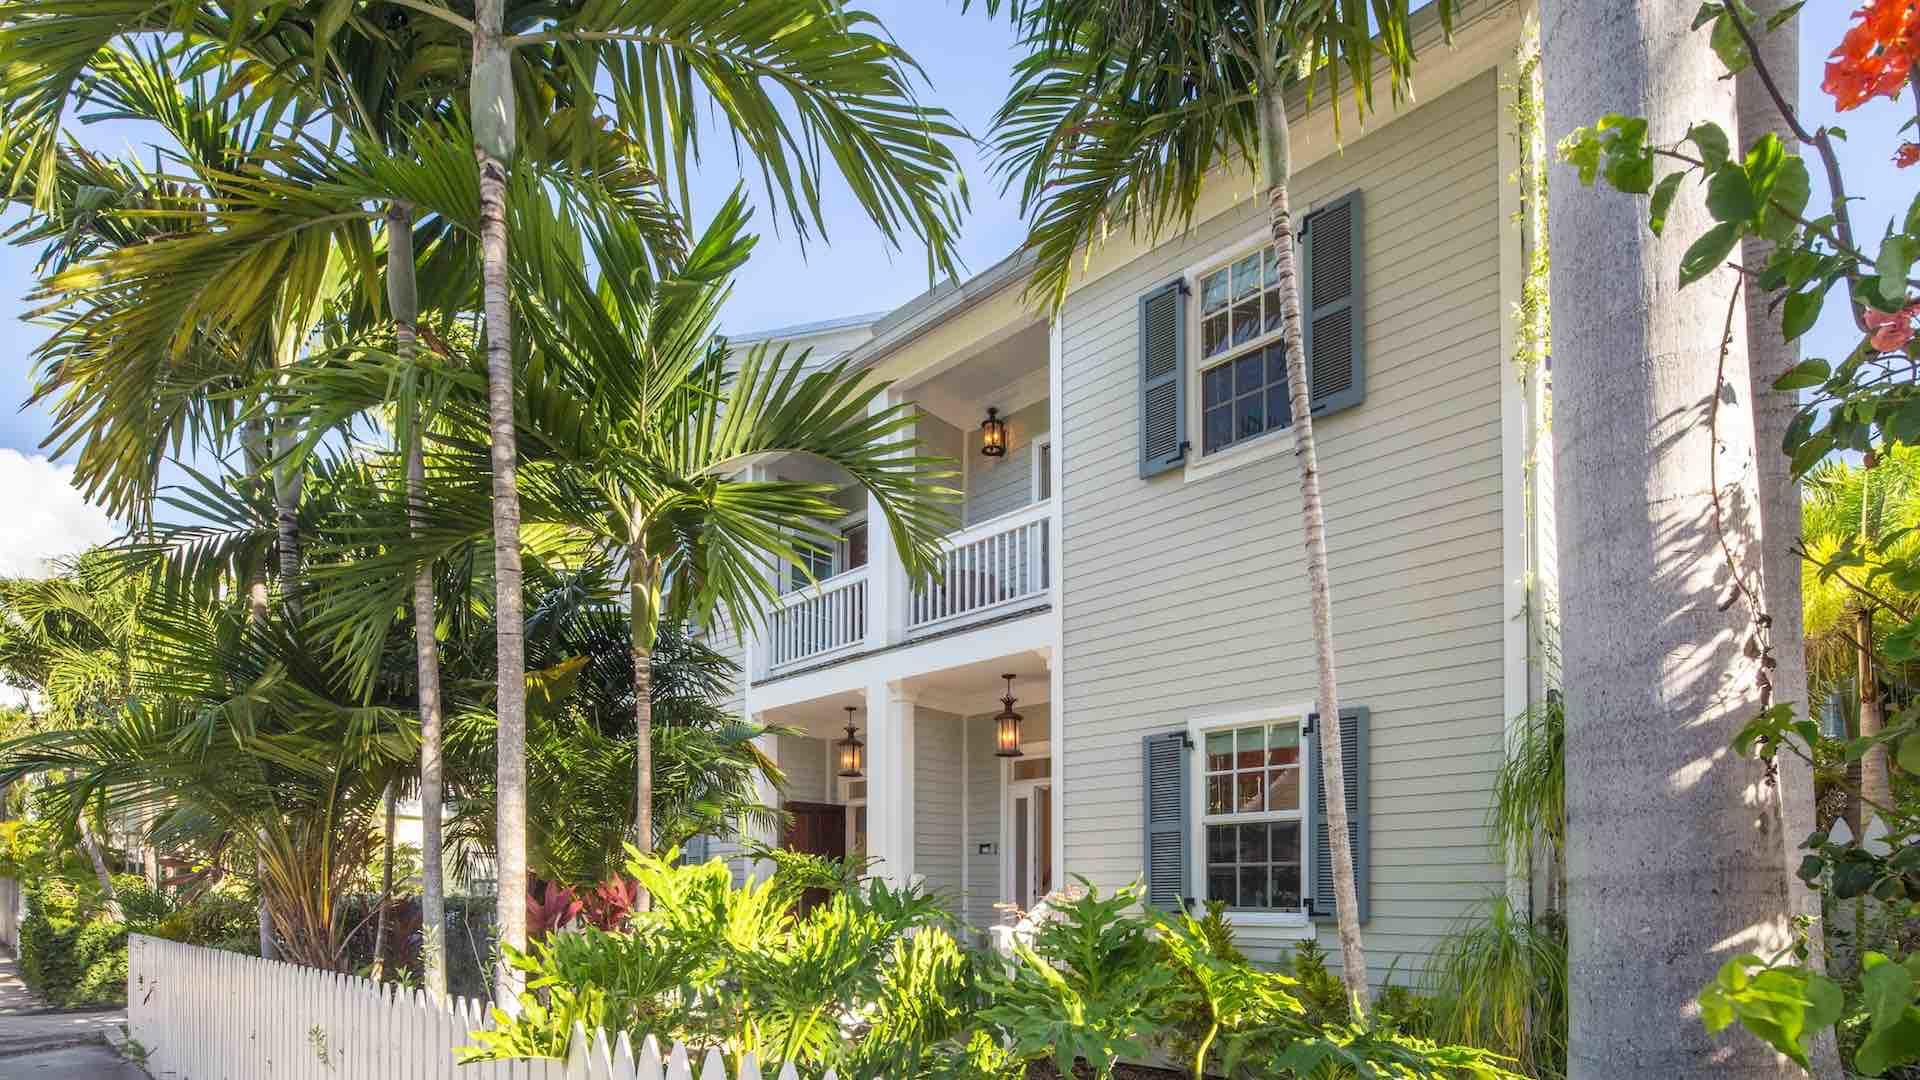 Round up the whole crew and make The Ibis & The Crane your home base during a memorable Key West vacation...